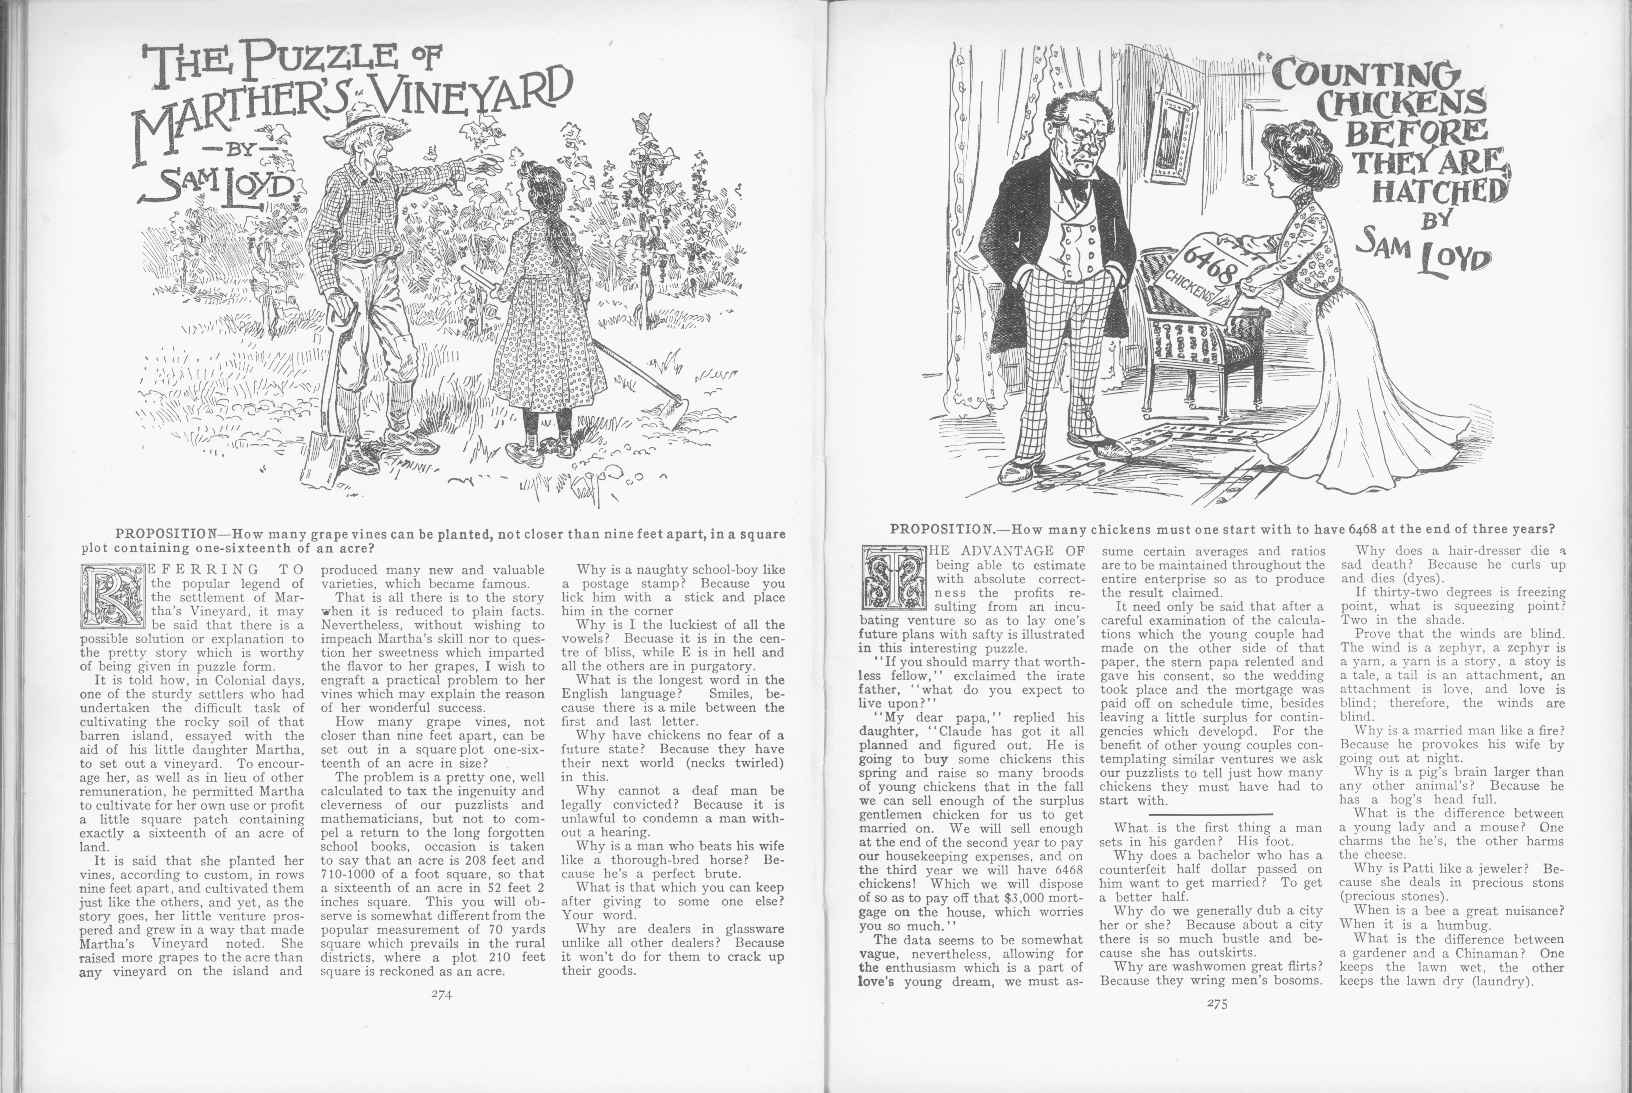 Sam Loyd - Cyclopedia of Puzzles - page 274-275